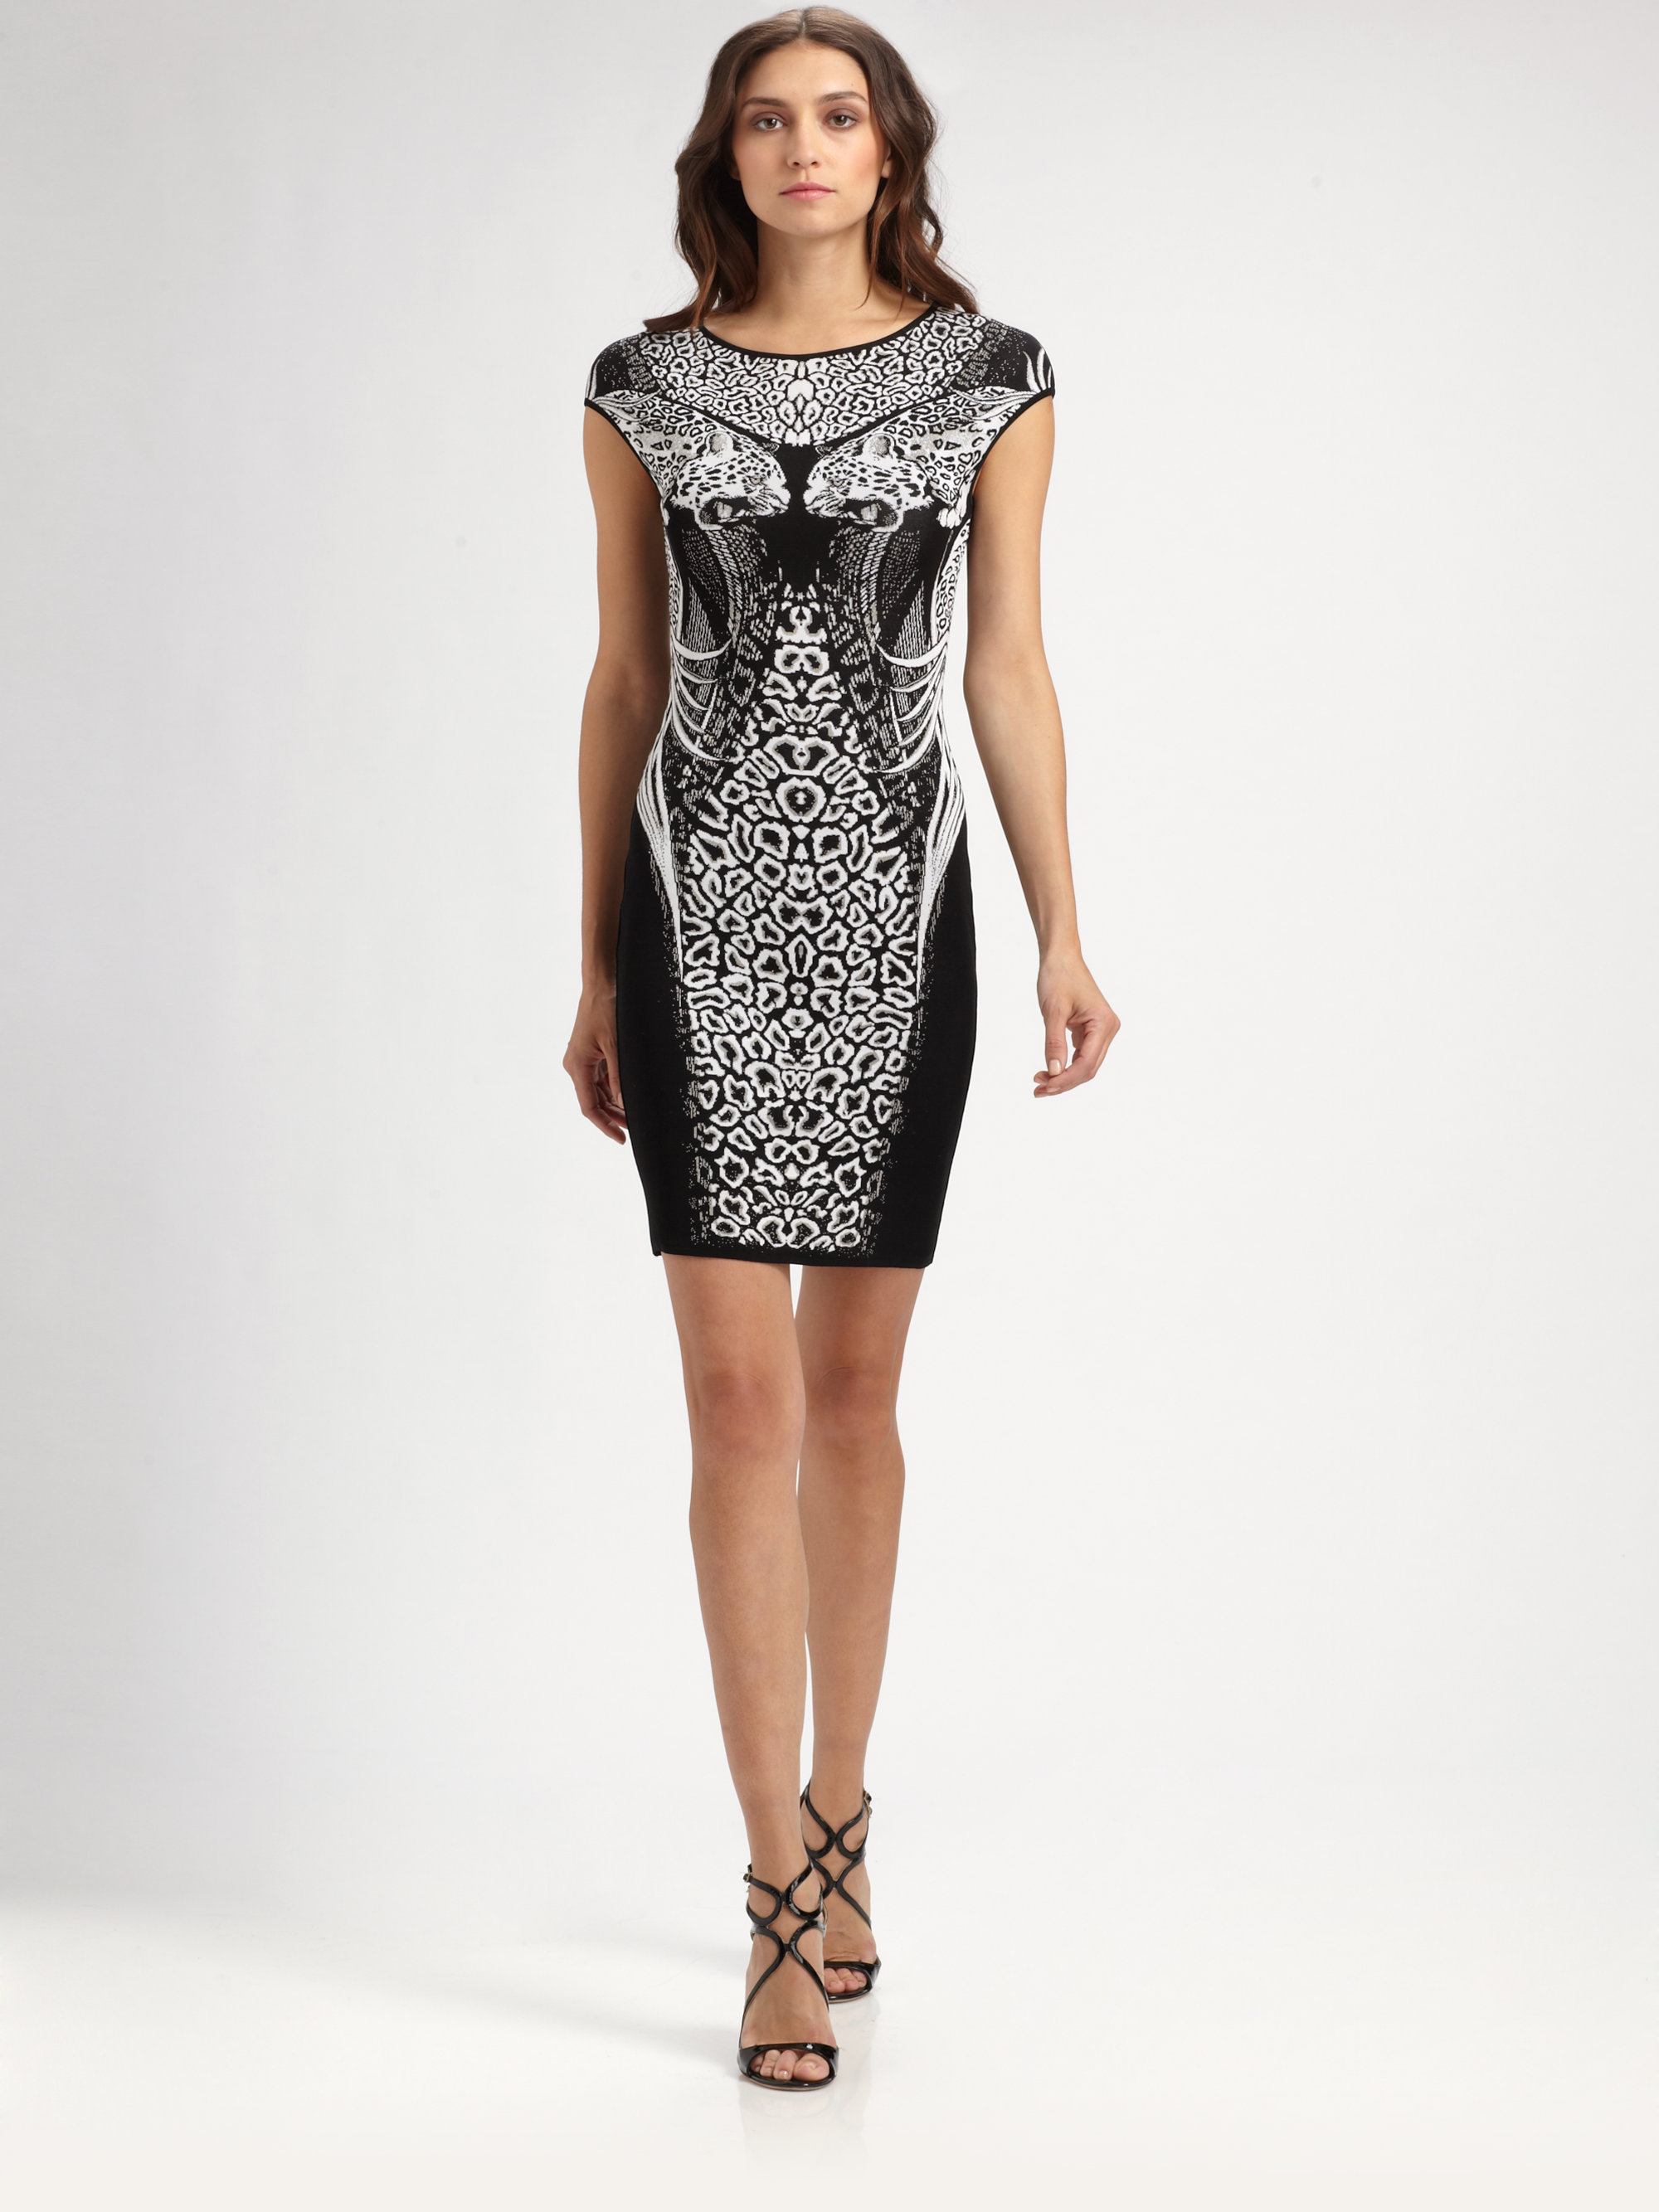 3d3c66e52e7 Roberto Cavalli Animal Print Dress in Black - Lyst